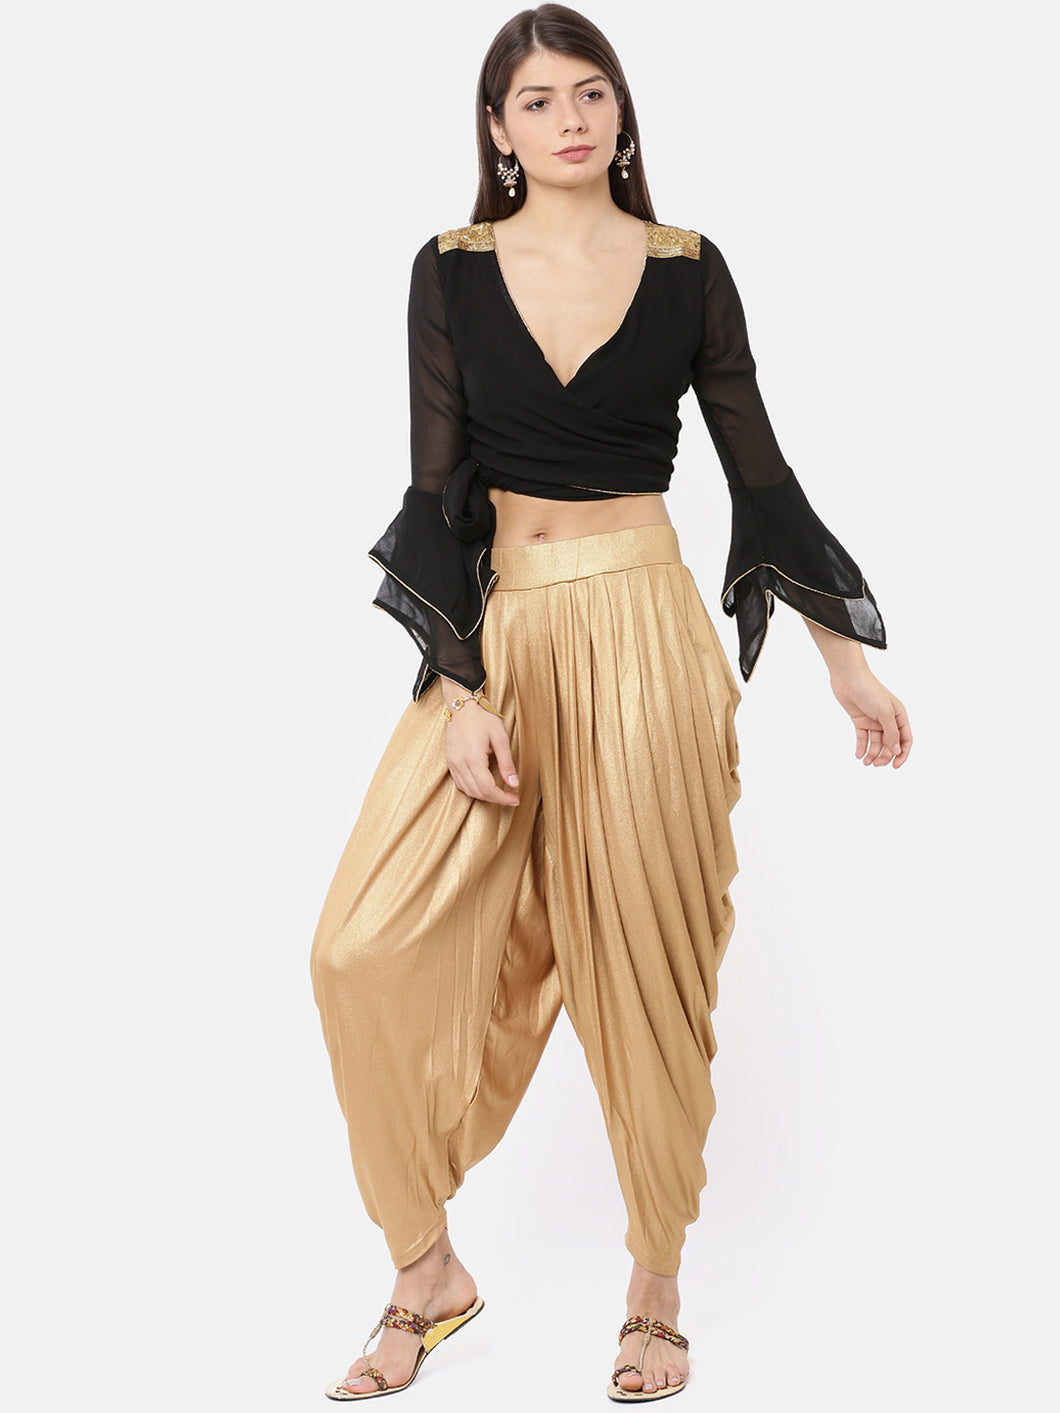 CHIFFON WRAP AROUND TOP EITH GOLD LACE TRIM AND MULTI LAYER BELL SLEEVES-Women Black Solid Crop Top